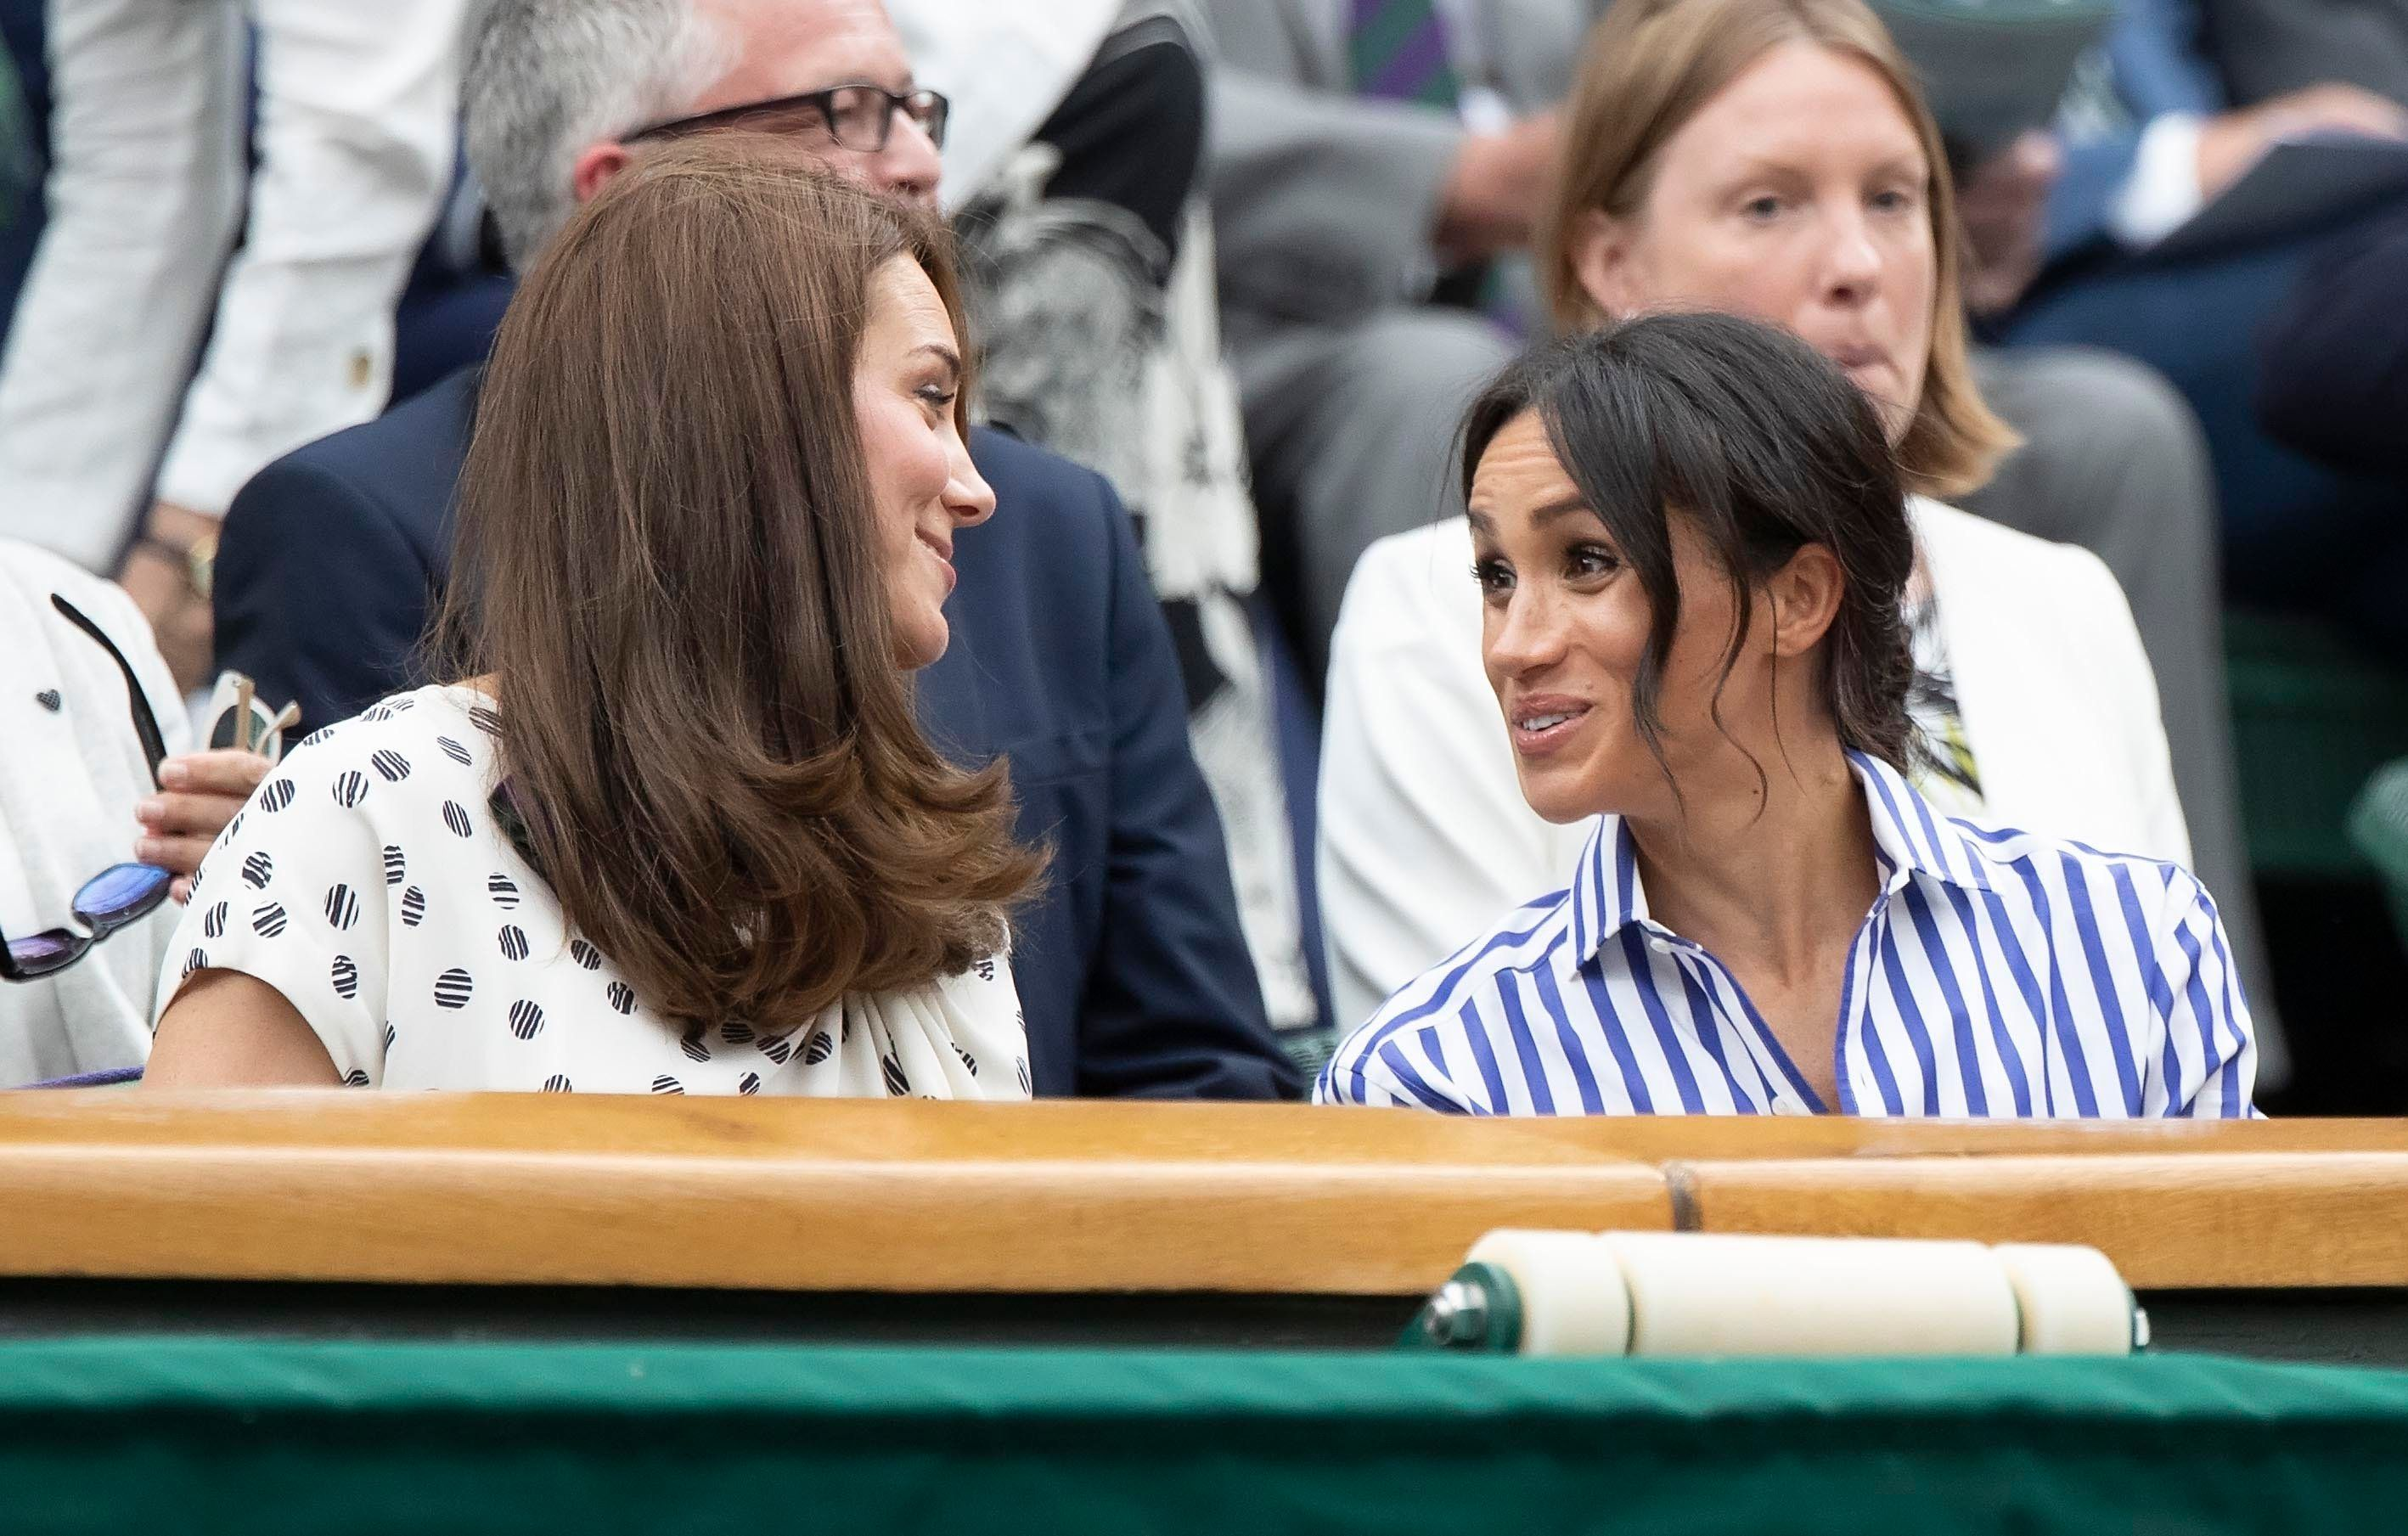 Kate Middleton Is 'Absolutely' Excited About Meghan Markle's Pregnancy